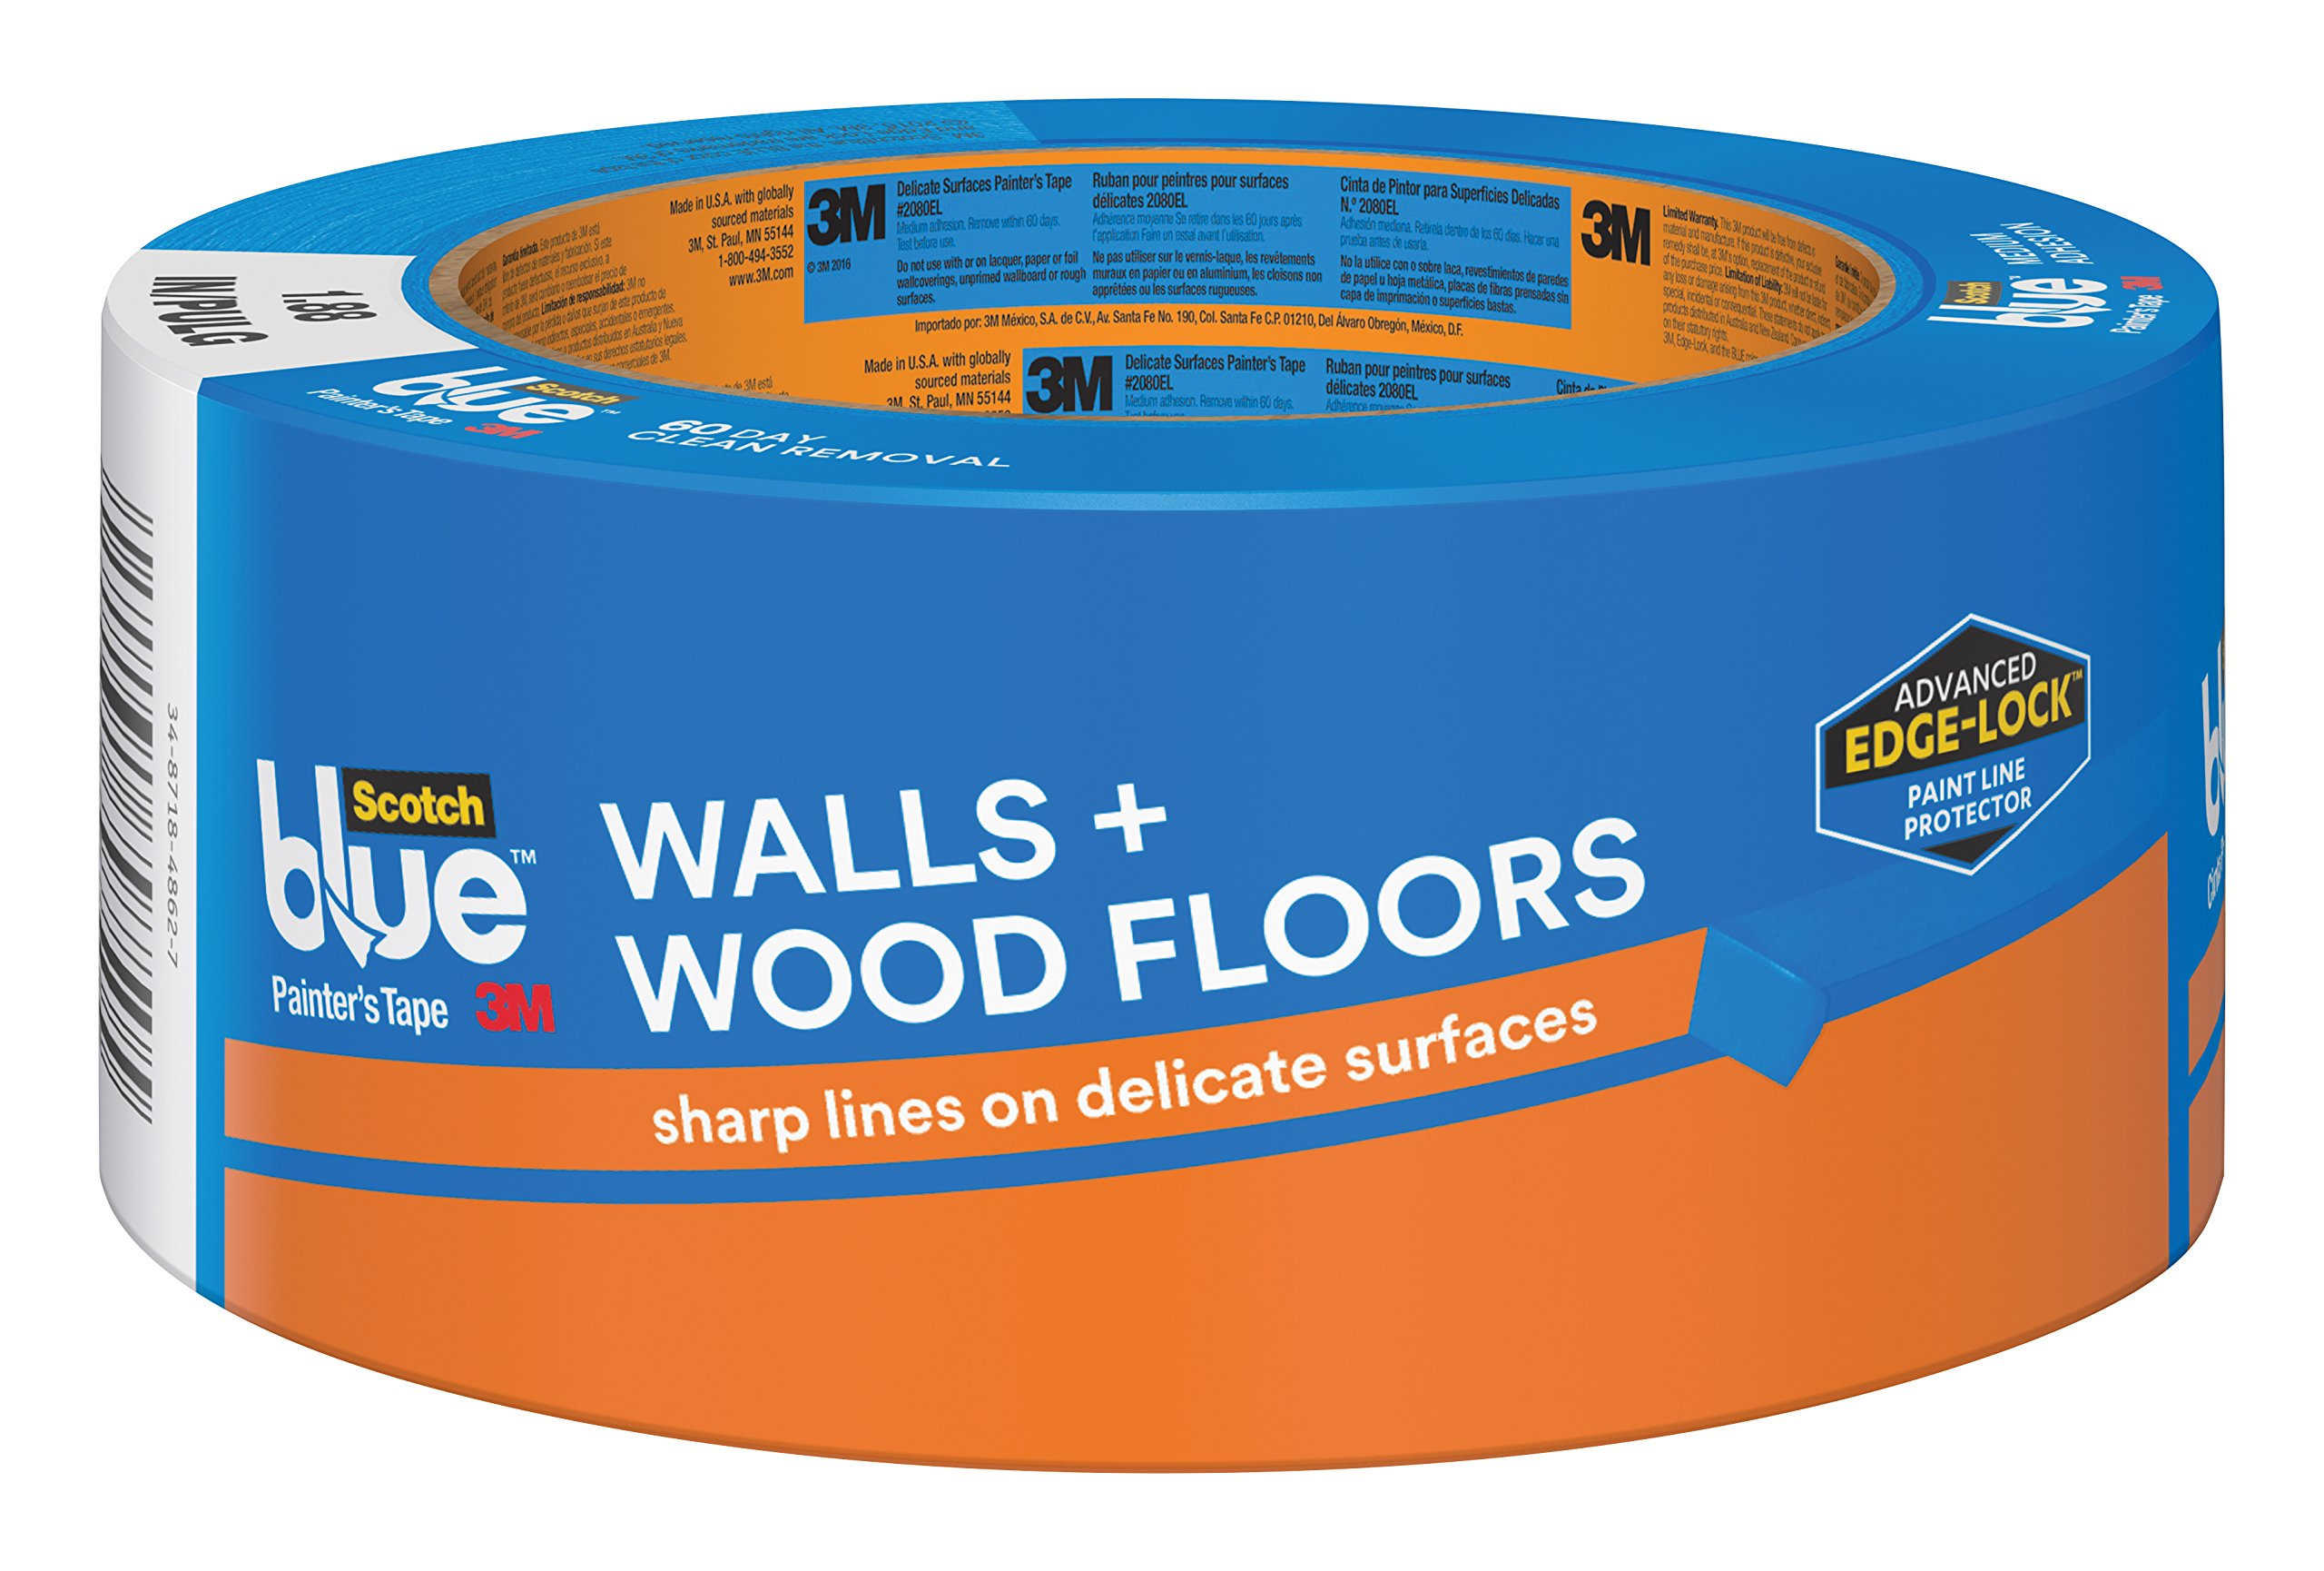 ScotchBlue WALLS + WOOD FLOORS Painter's Tape, 1.88-Inch x 60-Yards, 1 Roll